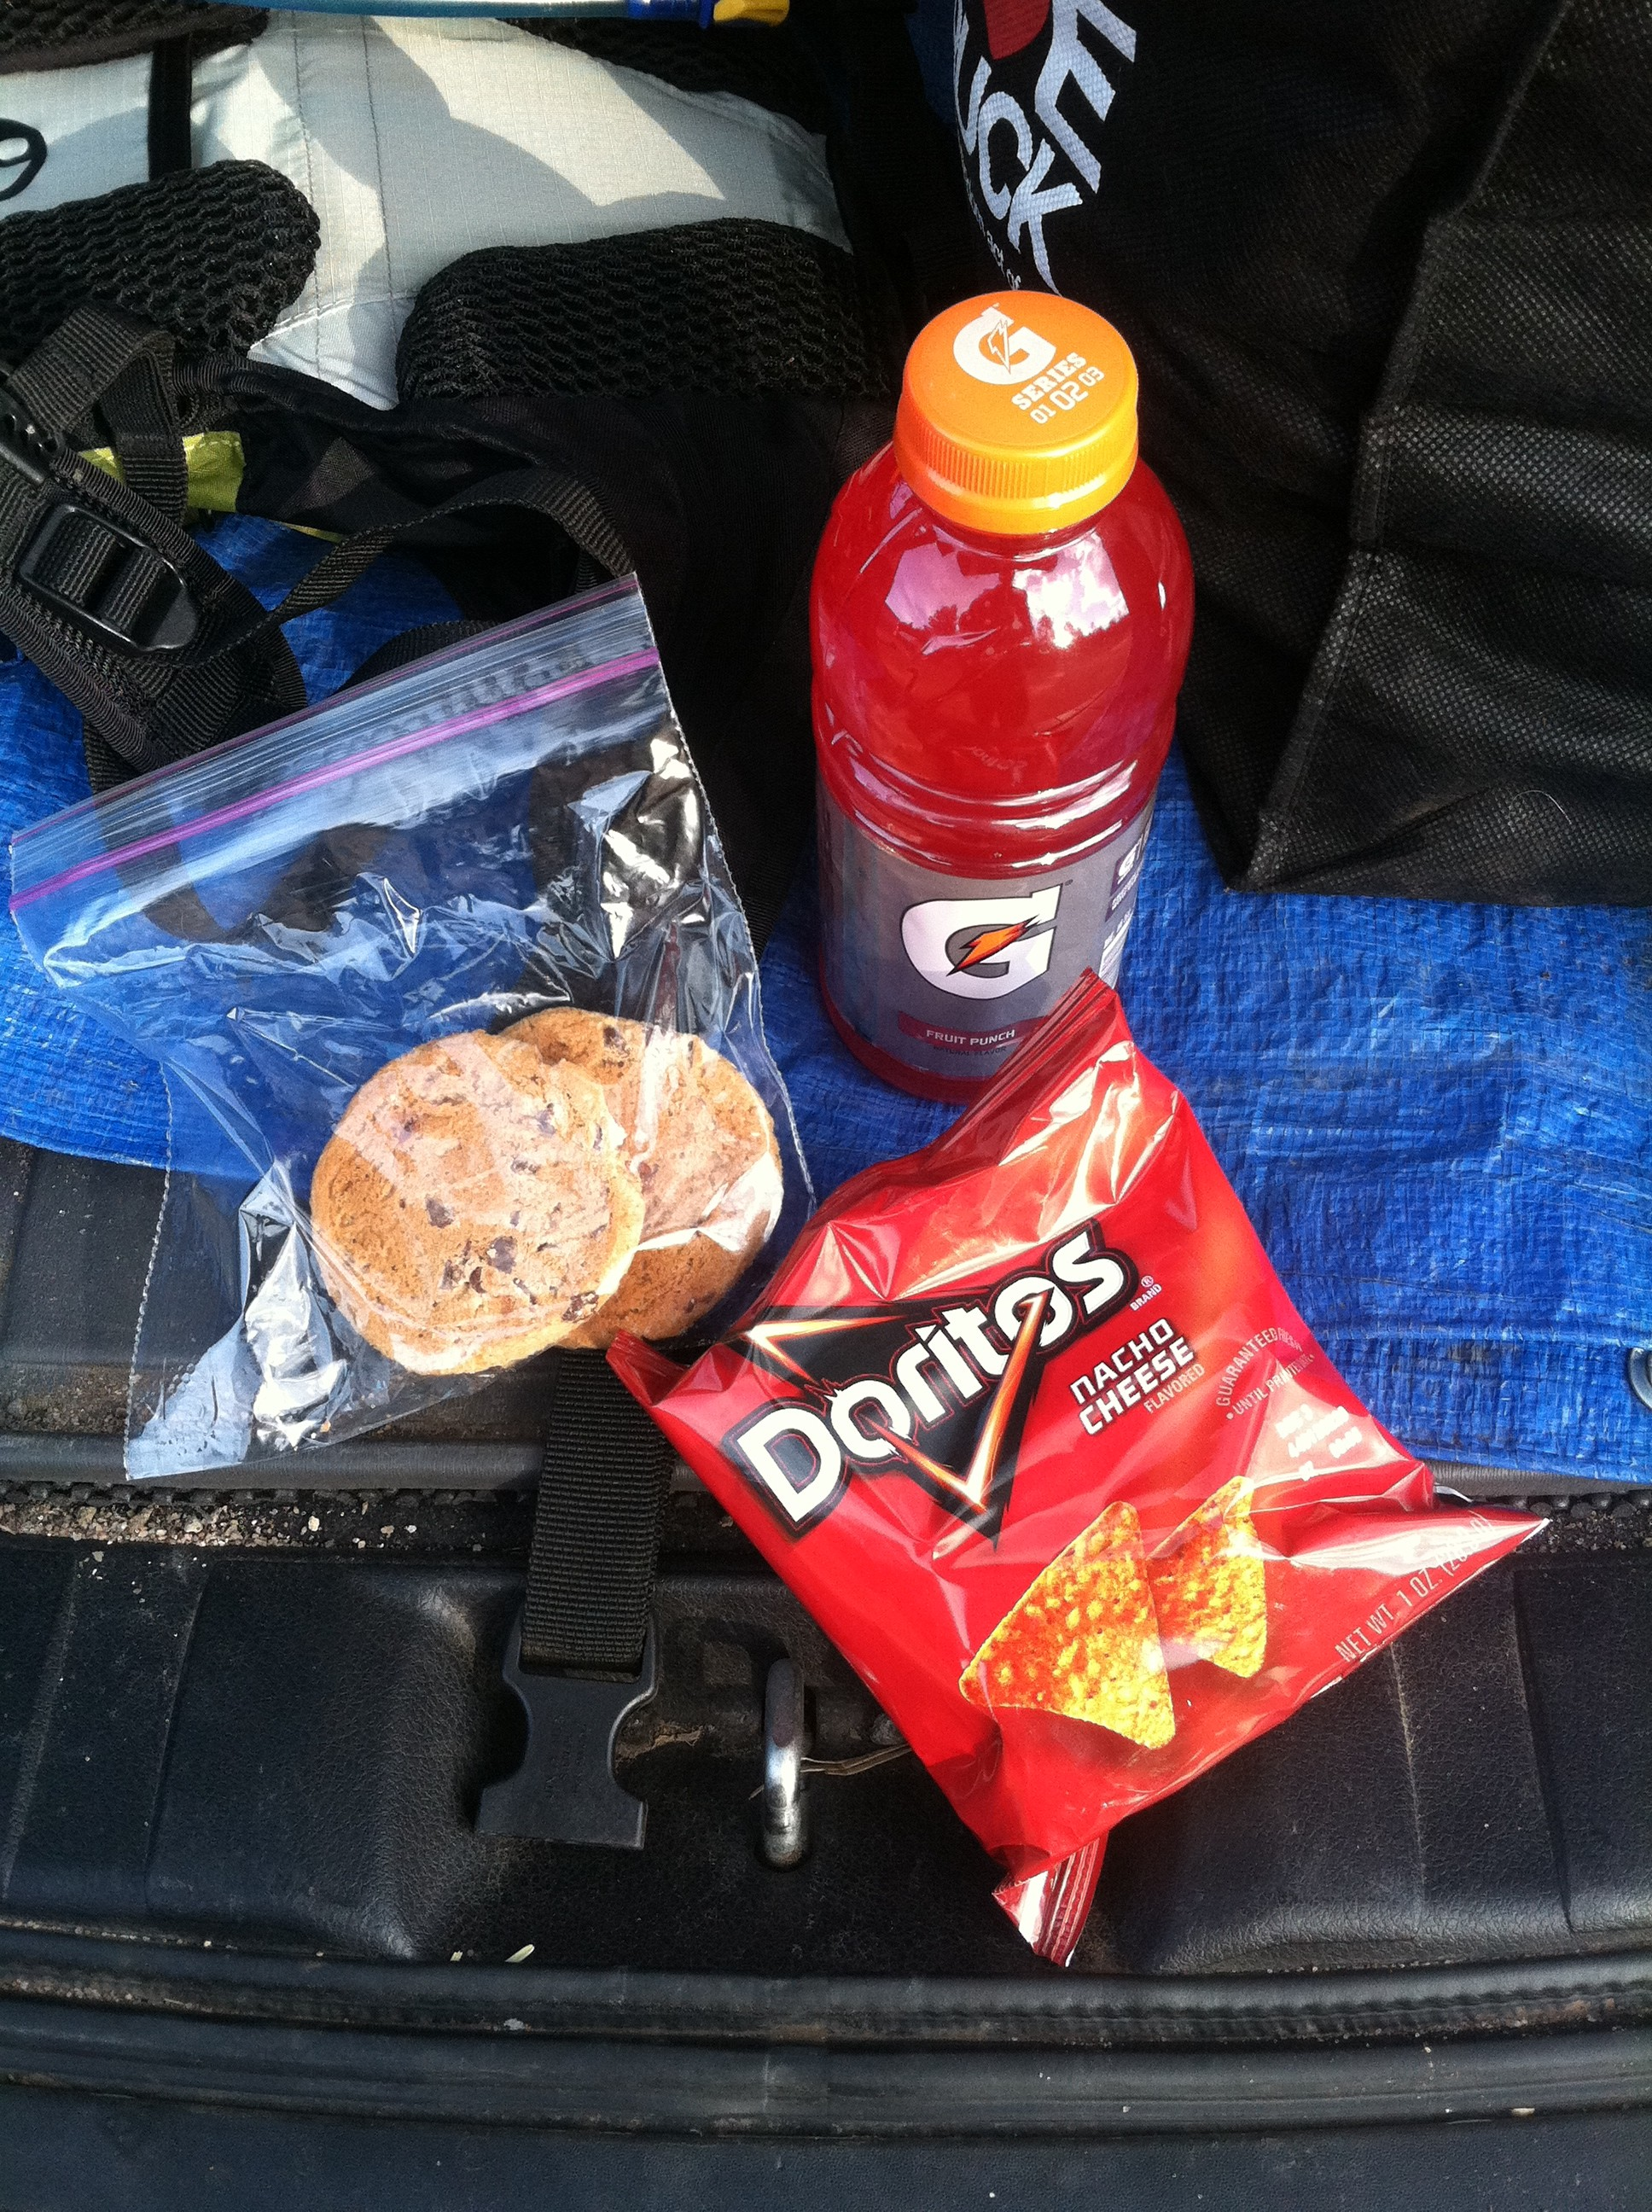 Snacks for the end of a ride are nice to